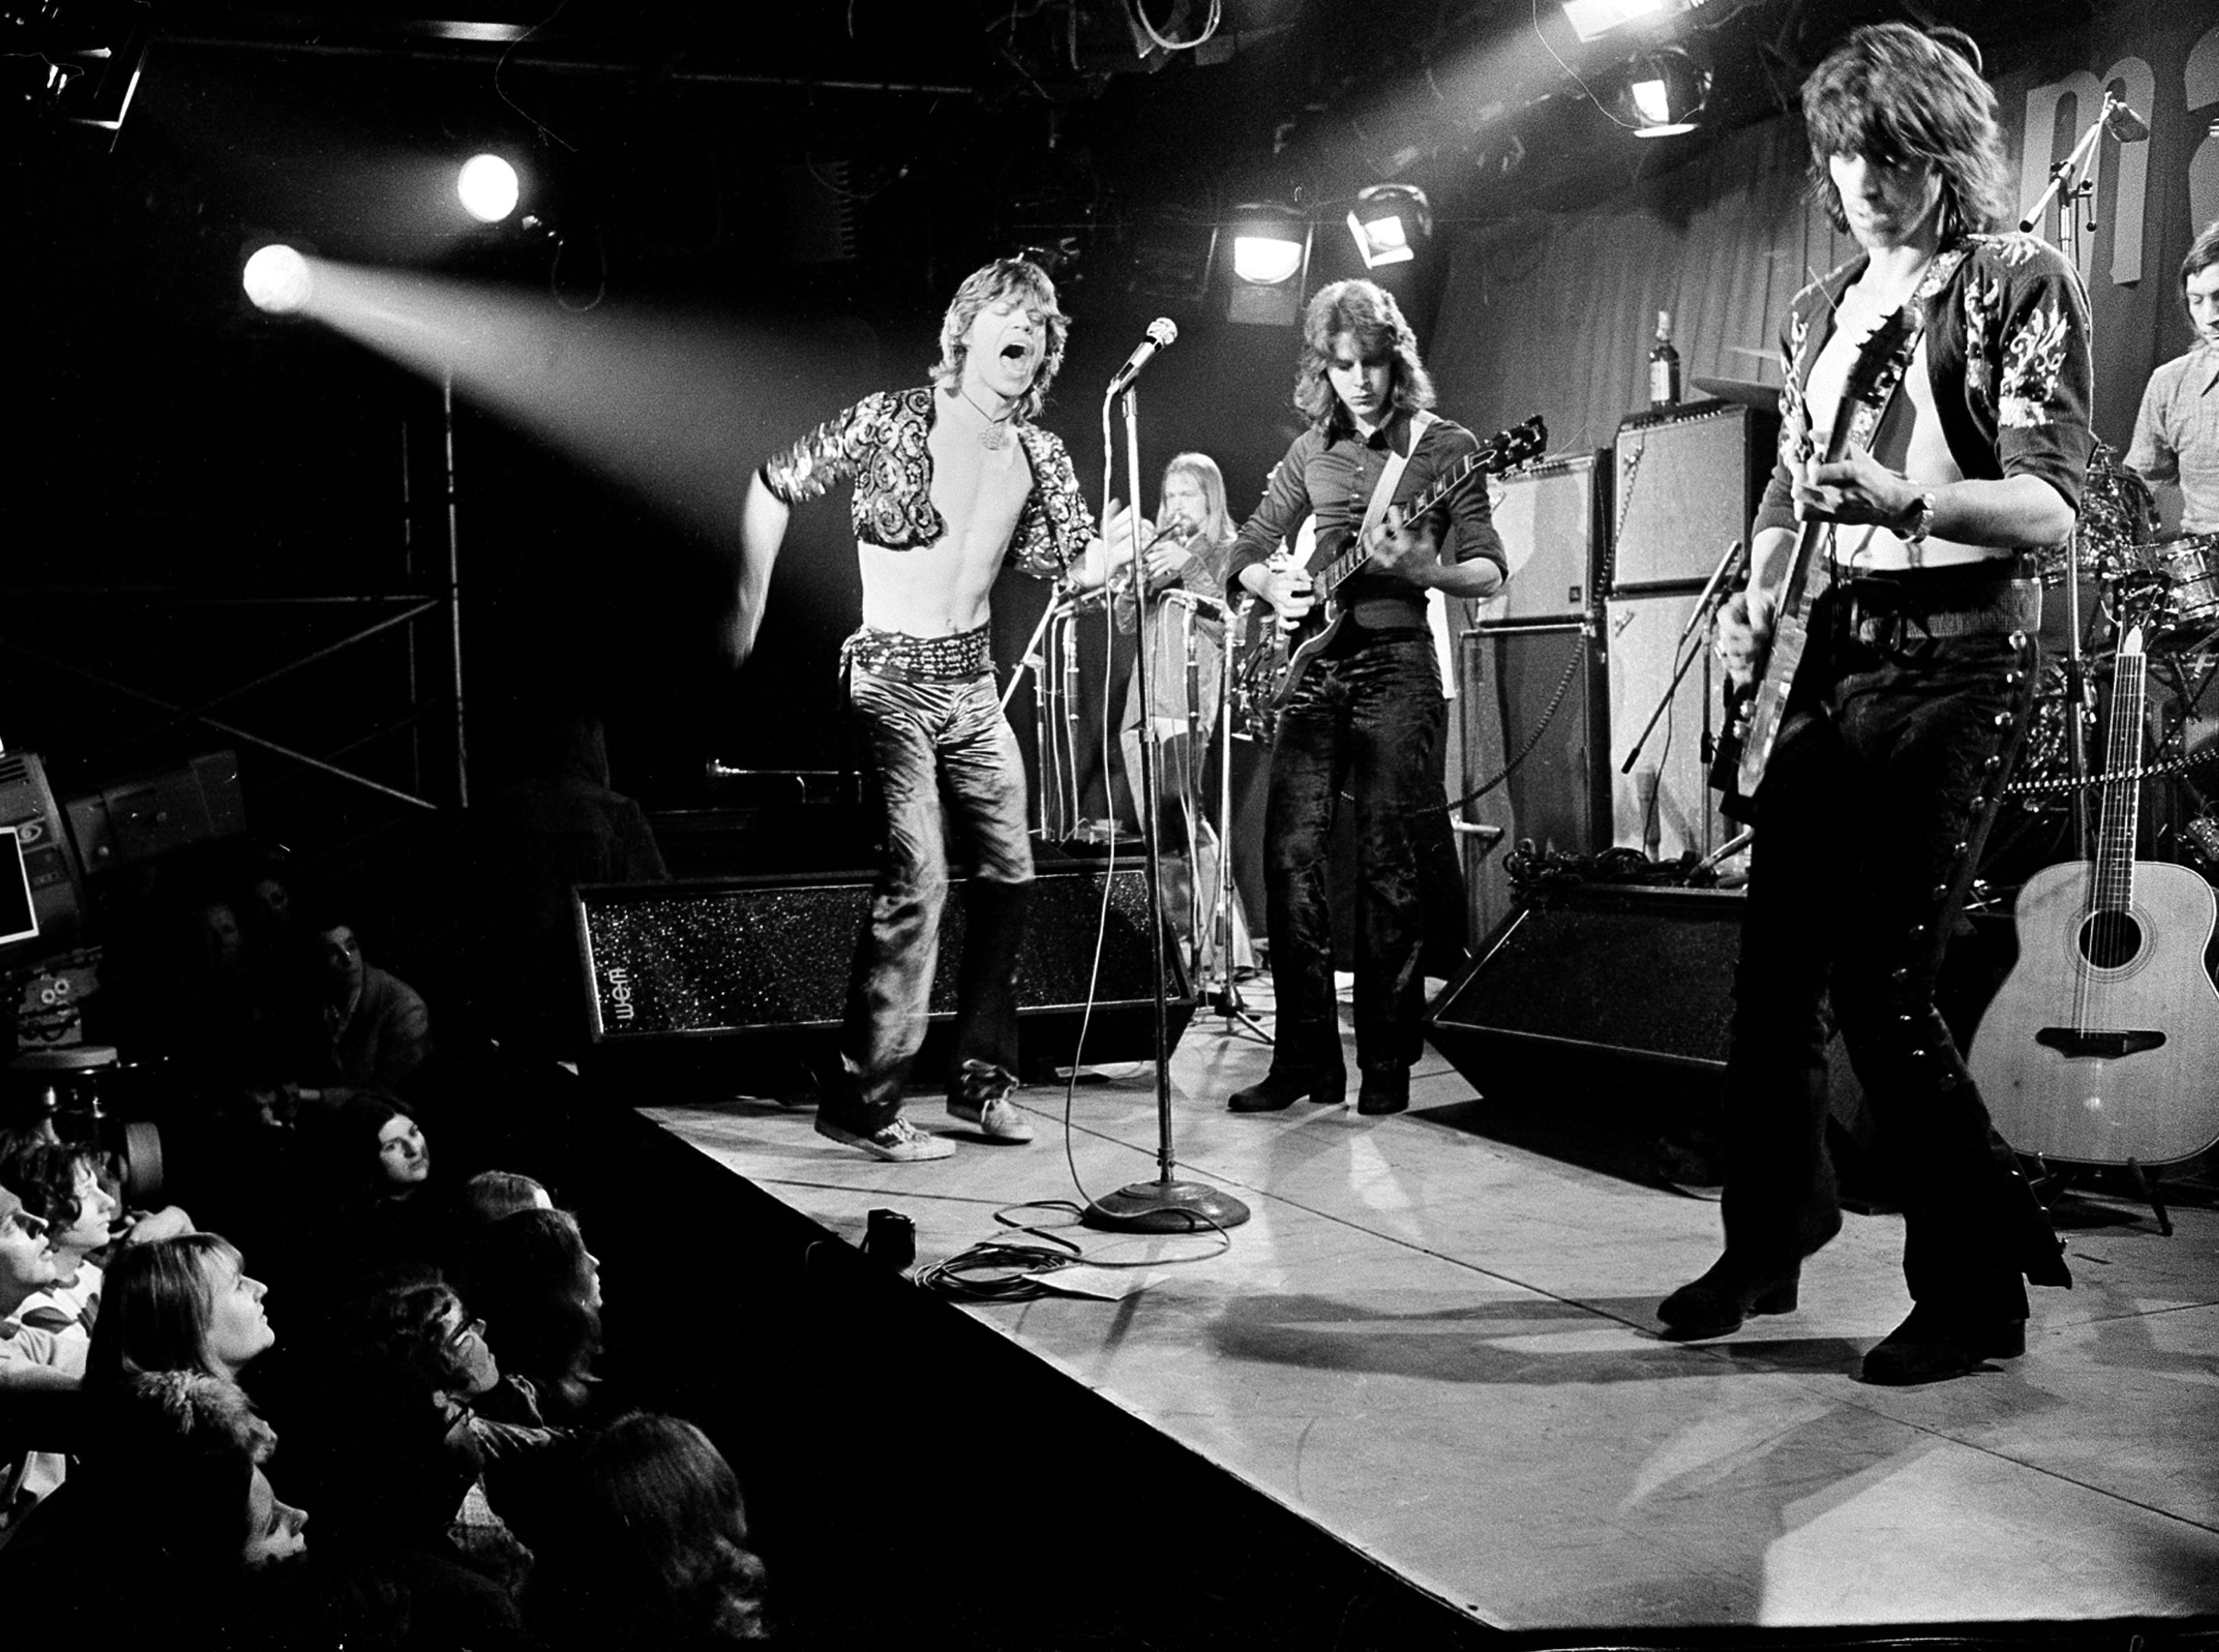 ORG XMIT: NYET168 FILE - This March 26, 1971 file photo shows British rock and roll band The Rolling Stones during their farewell performance at London's Marquee Club, in London.  The band members are, from left, Mick Jagger, vocals; Mick Taylor, guitar; Keith Richards, guitar; and Charlie Watts, drums. The musician in background is unidentified. Thursday, July 12, 2012, marks 50 years since Jagger played his first gig with the band. Now in their late 60s and early 70s, the band members are celebrating the anniversary by attending a retrospective photo exhibition at London's Somerset House _ and looking to the future by rehearsing for new gigs. (AP Photo, file)